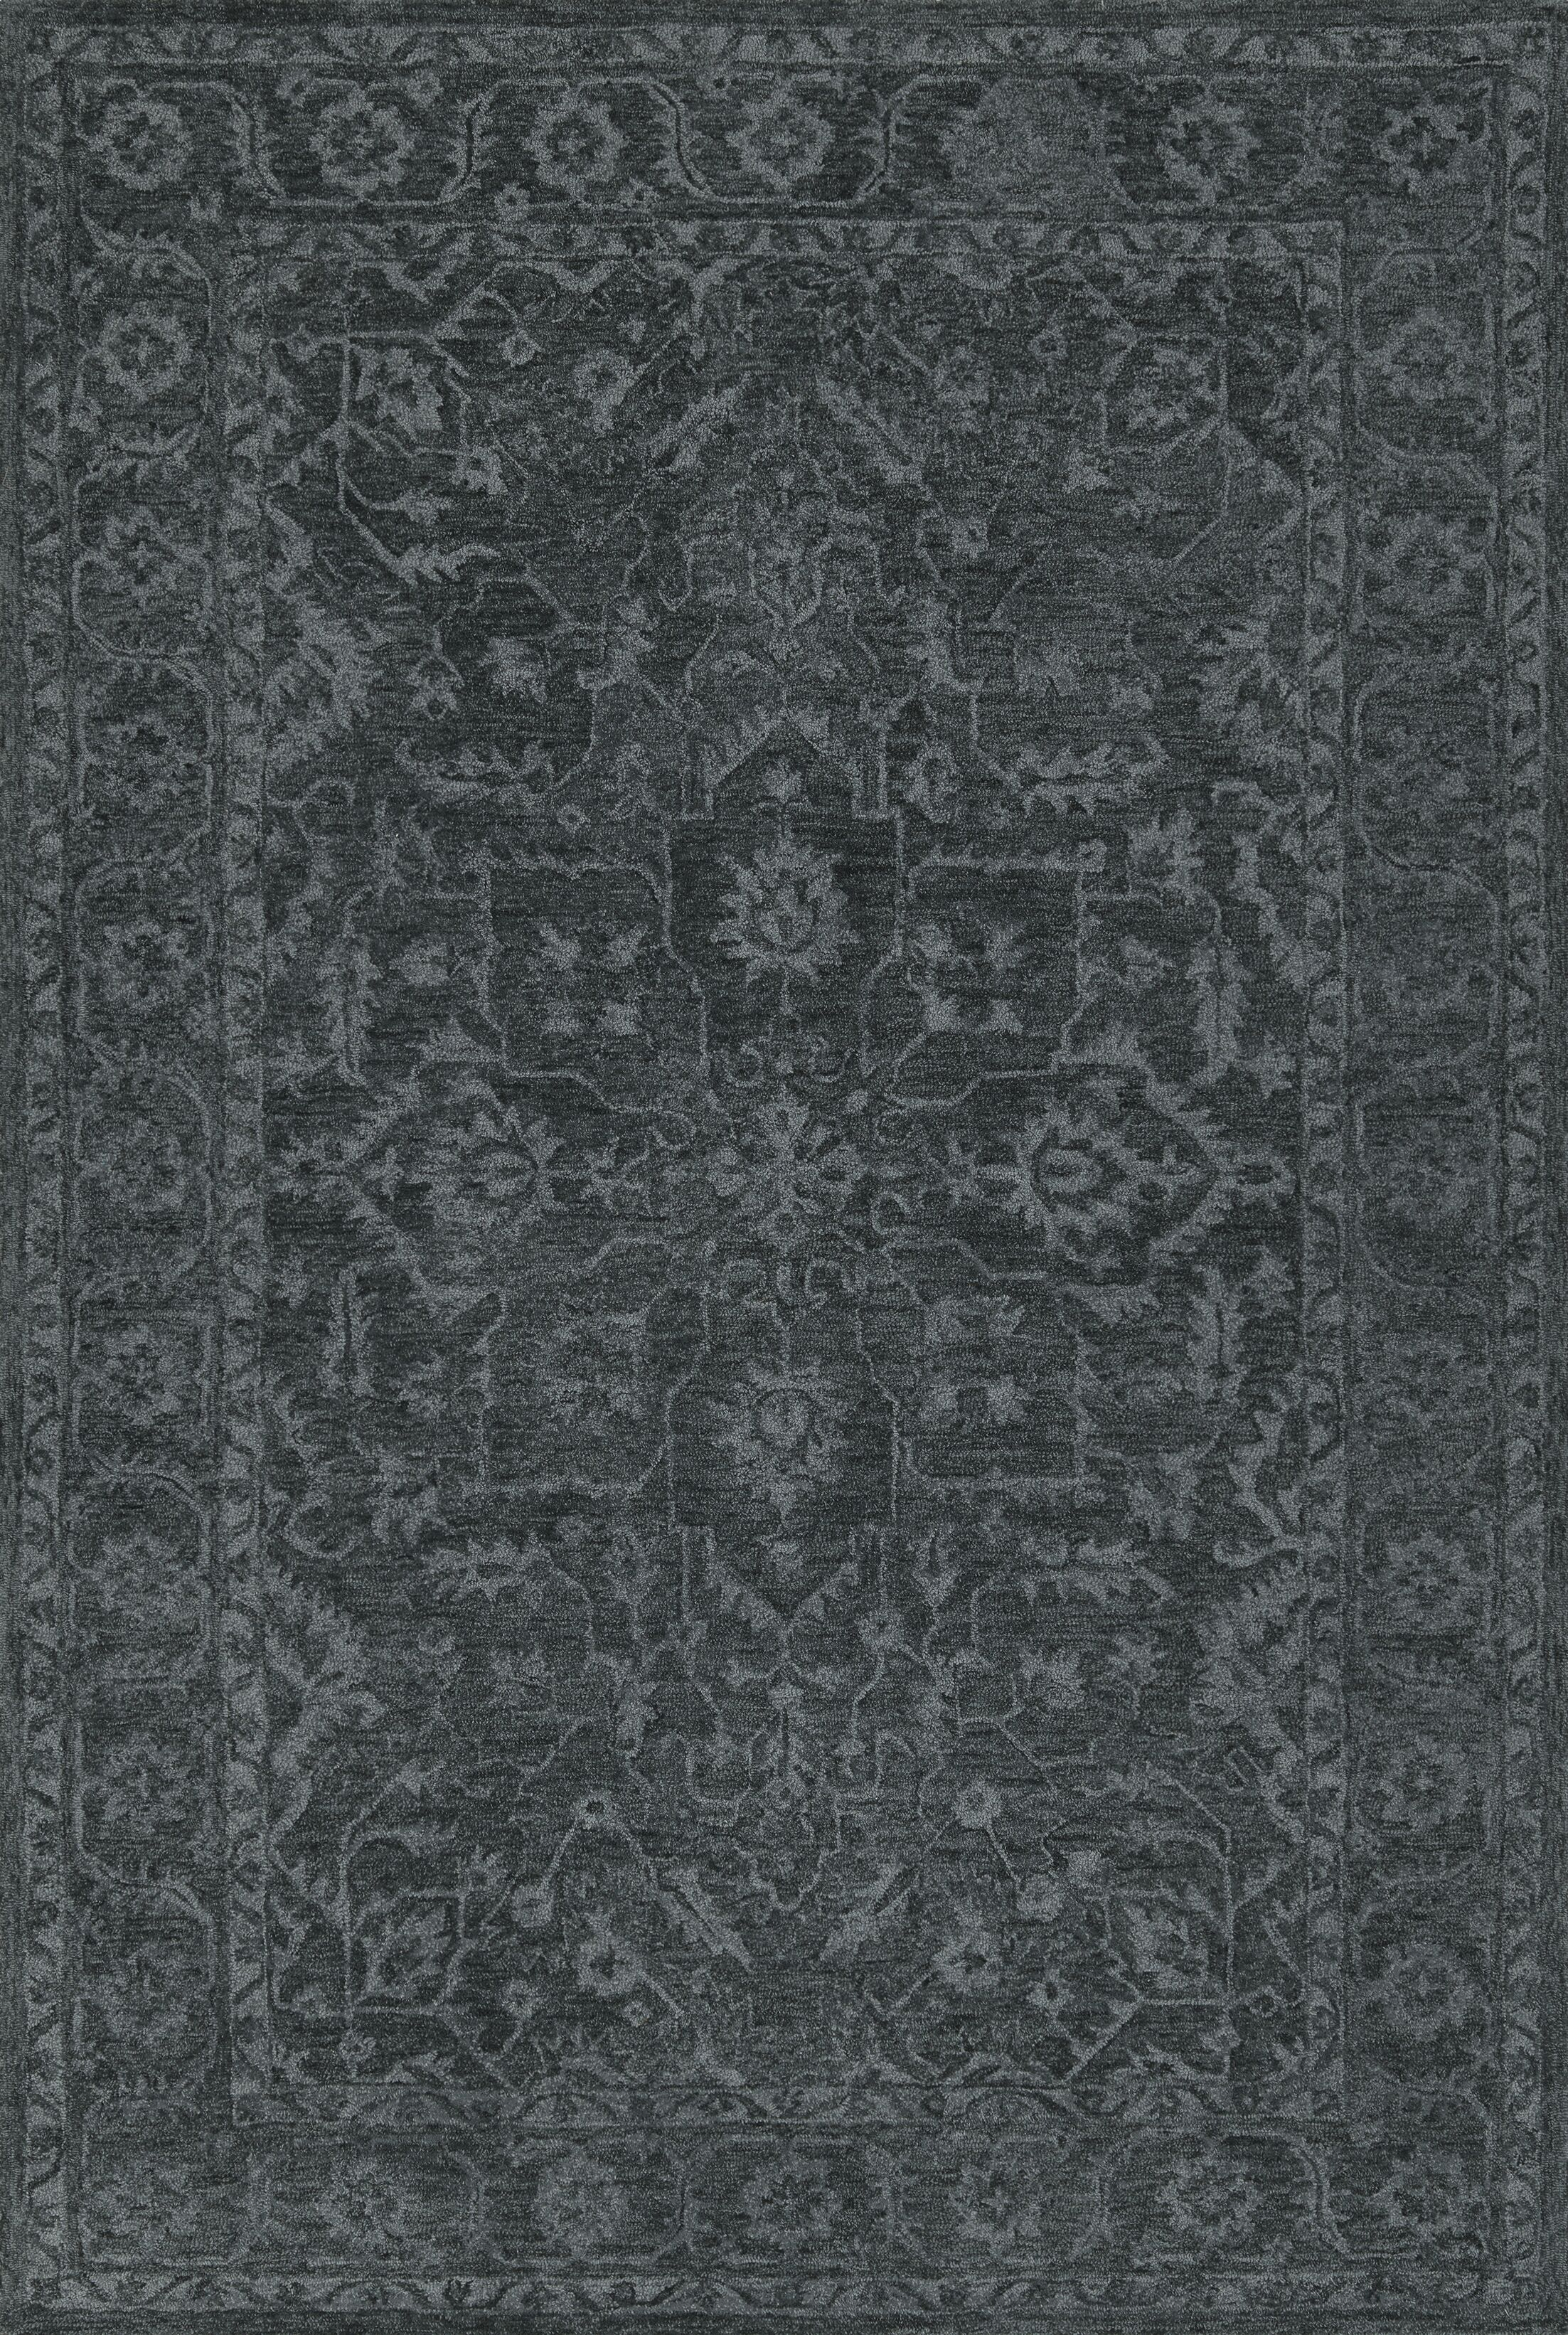 Chatmon Hand-Tufted Wool Midnight Area Rug Rug Size: Rectangle 3'6